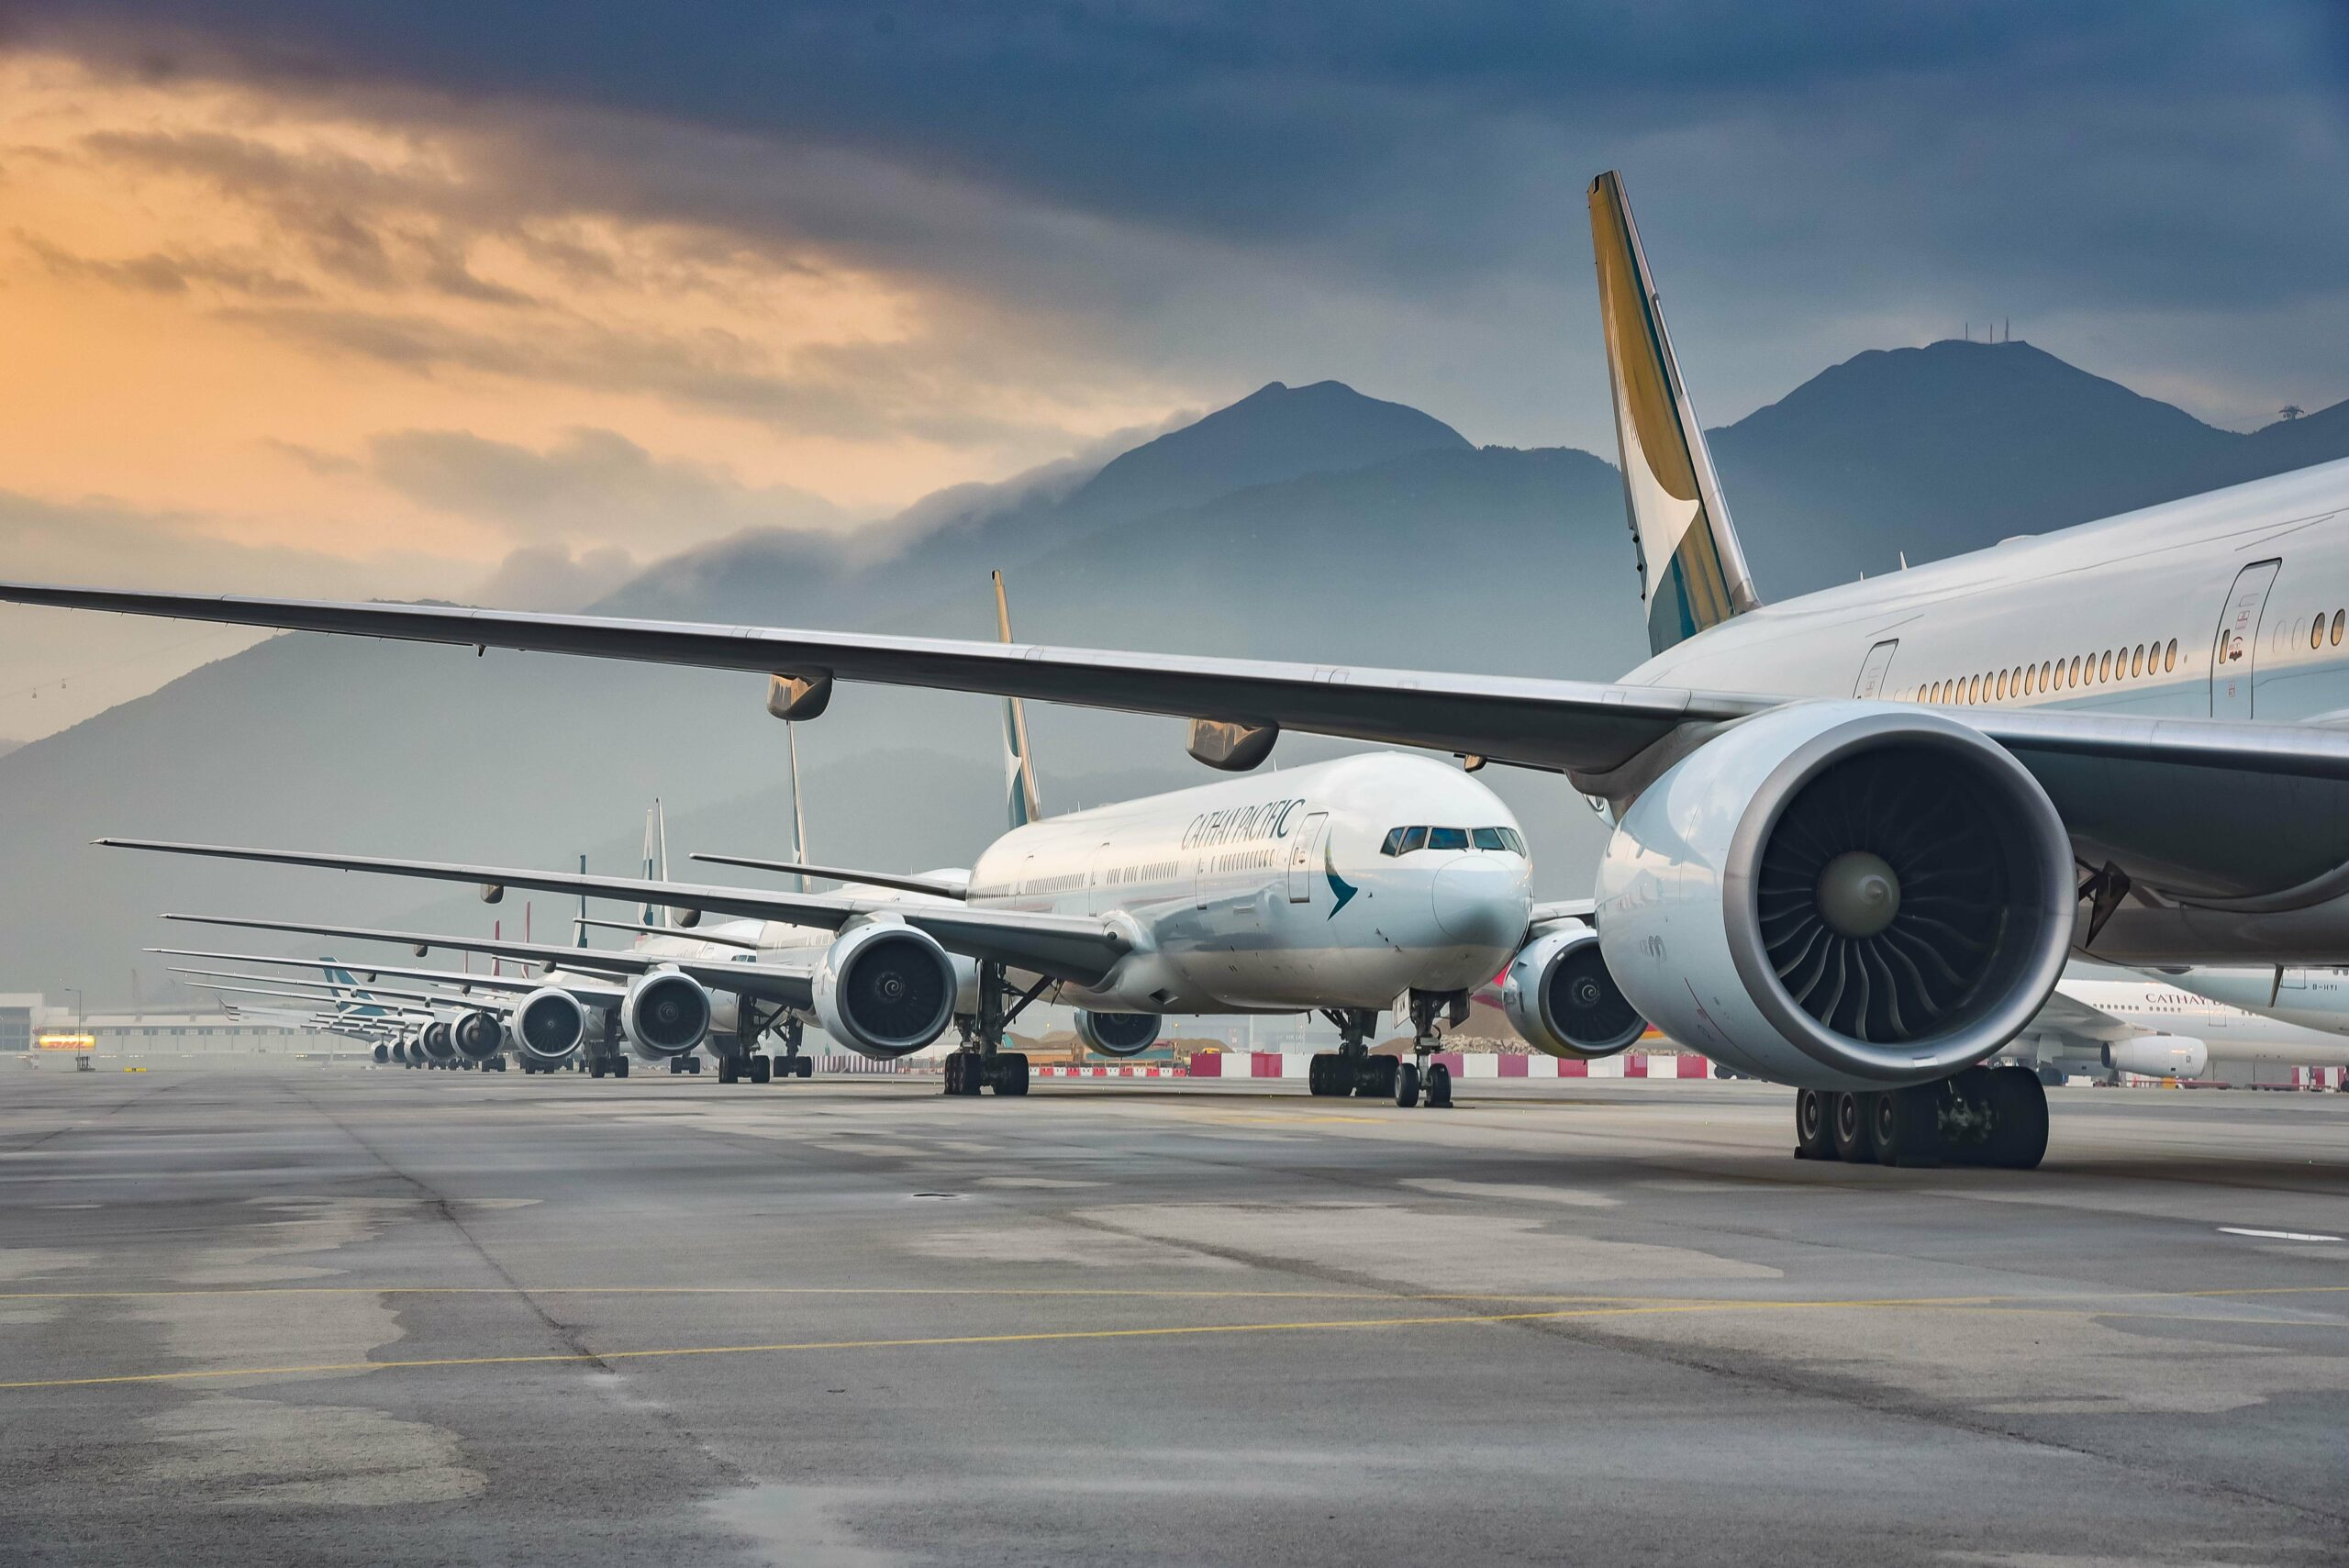 Hong Kong's Cathay Pacific looking for survival during Covid-19 1